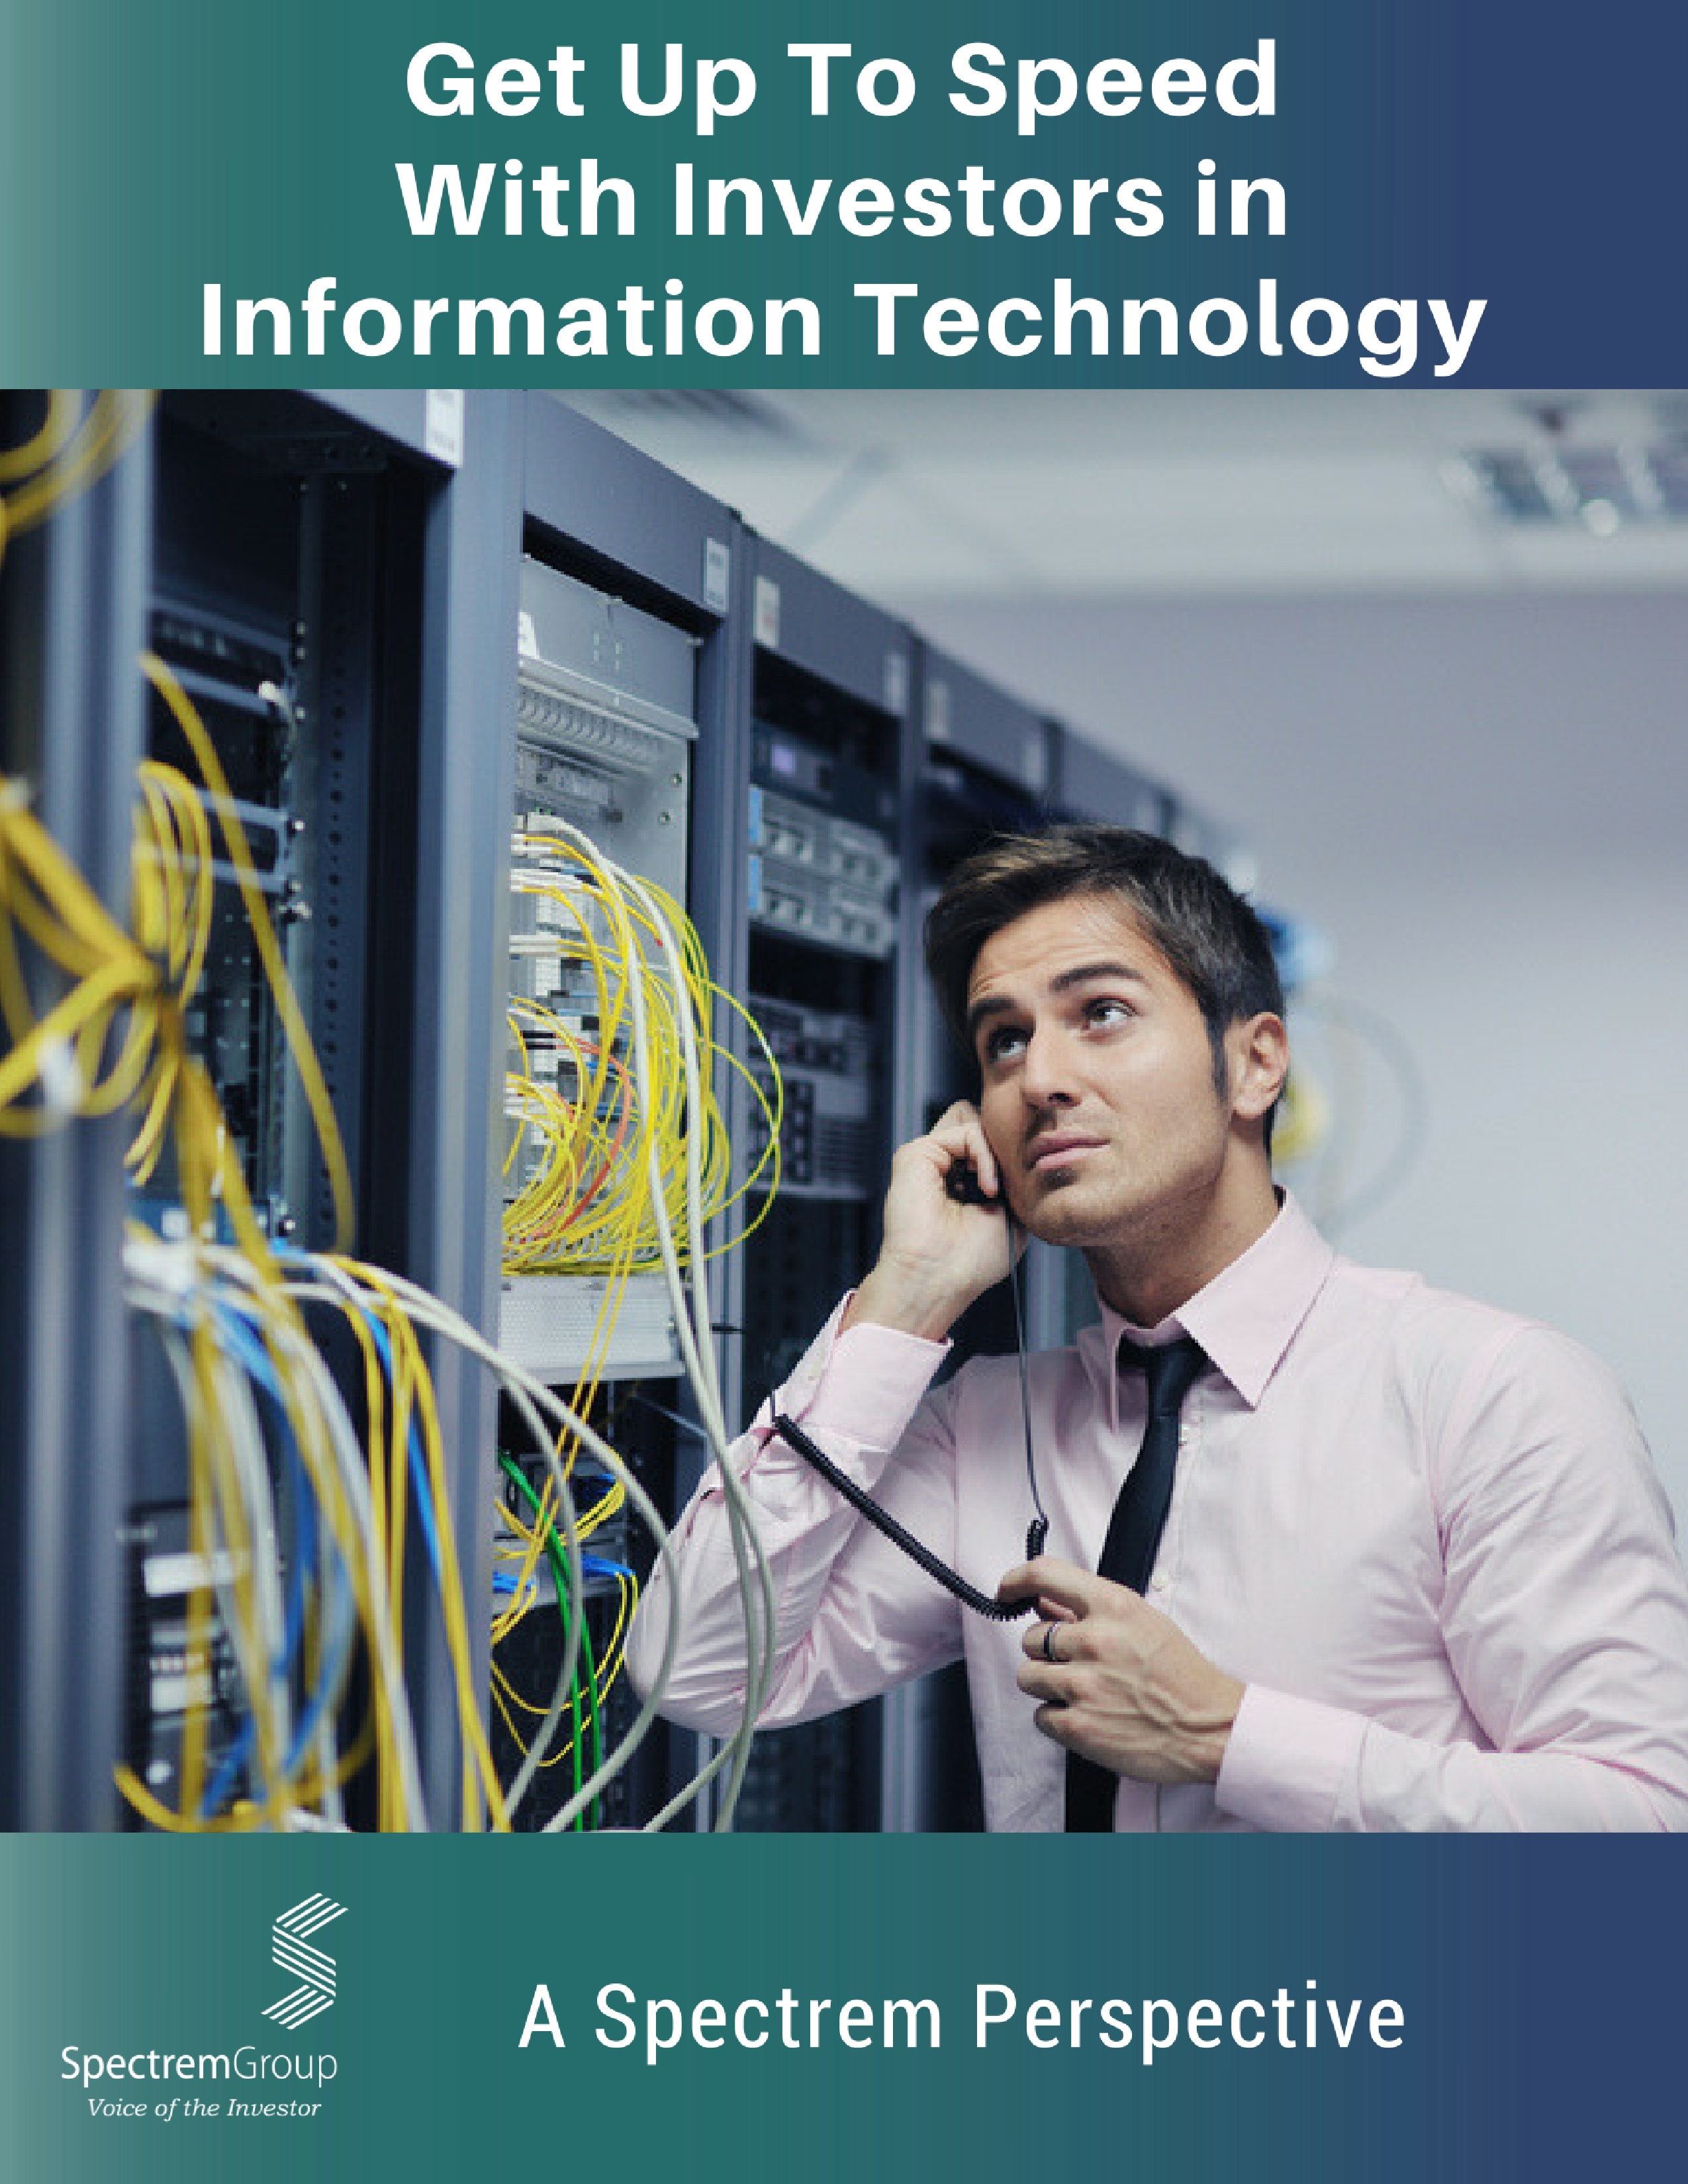 Get Up to Speed With Investors in Information Technology